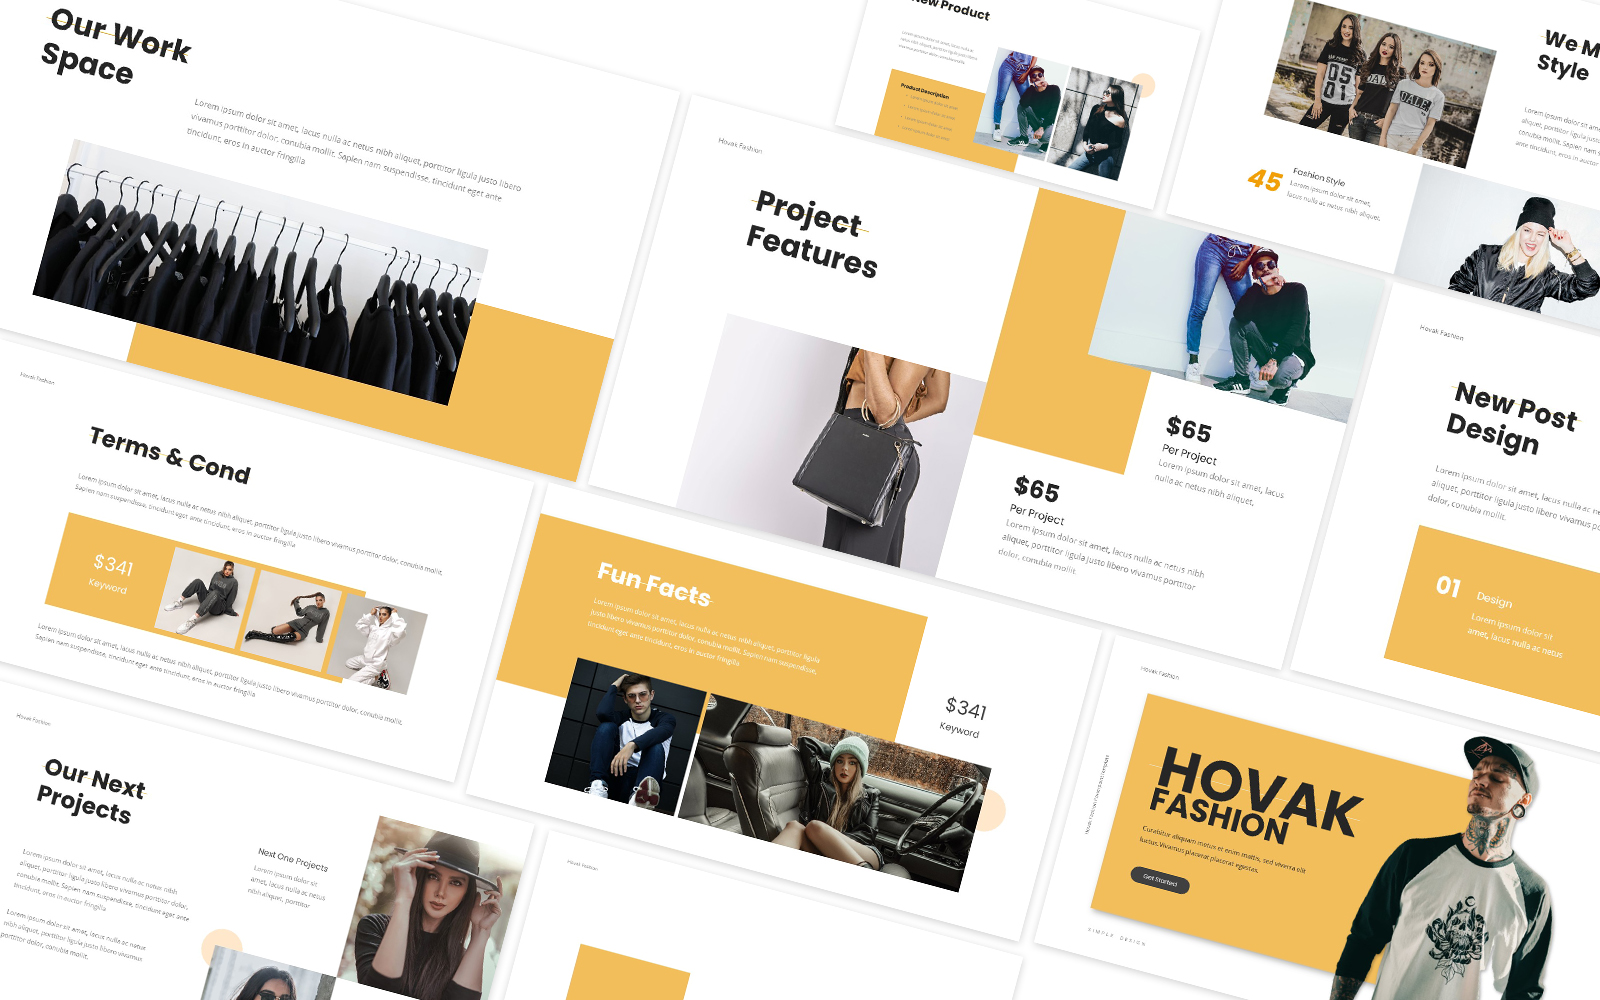 Hovak Fashion Powerpoint Template